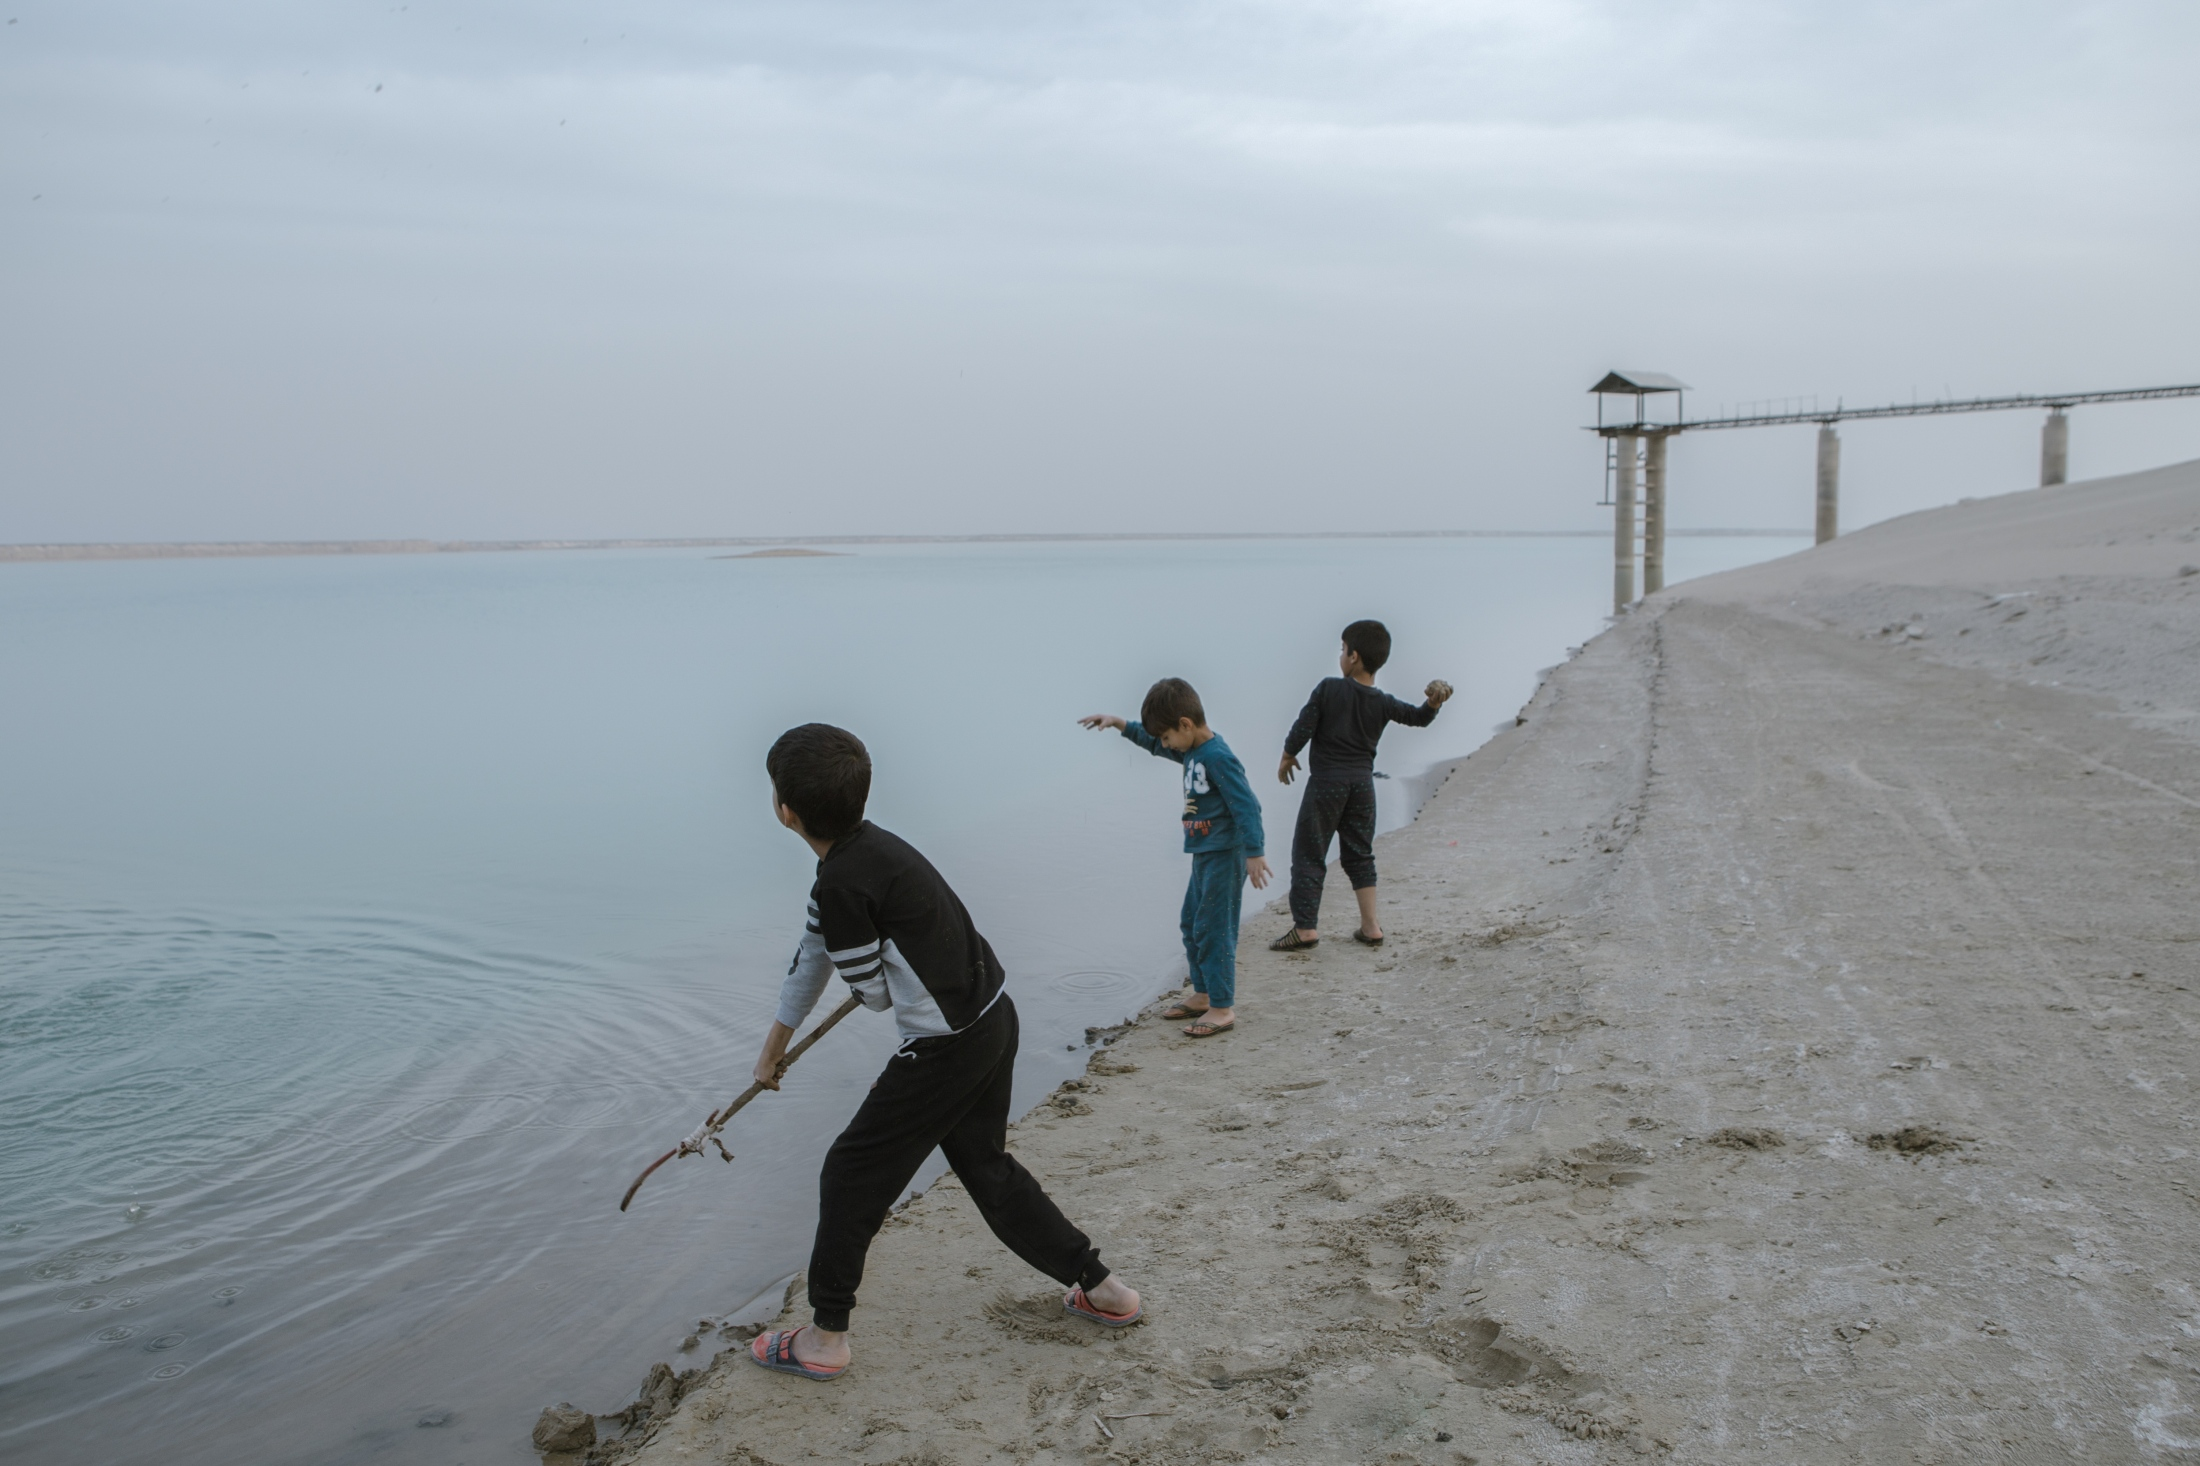 Children are playing around the Chah Nimeh reservoirs. The Chah Nimeh reservoirs are large natural holes in Sistan province into which Hirmand river water is directed. In times of water shortage, Sistan's drinking water and some part of its farming water are provided through this artificial lake. The only sign of water in the Sistan landscape is the Chah Nimeh reservoir. During 20 years, the Hamun wetlands had vanished after the South Asia region was hit by the most persistent drought. besides building many dams at the Upstream Hirmand, Afghanistan refuses to adapt to Iran's water rights and violates its water agreements.  Sistan province.2018